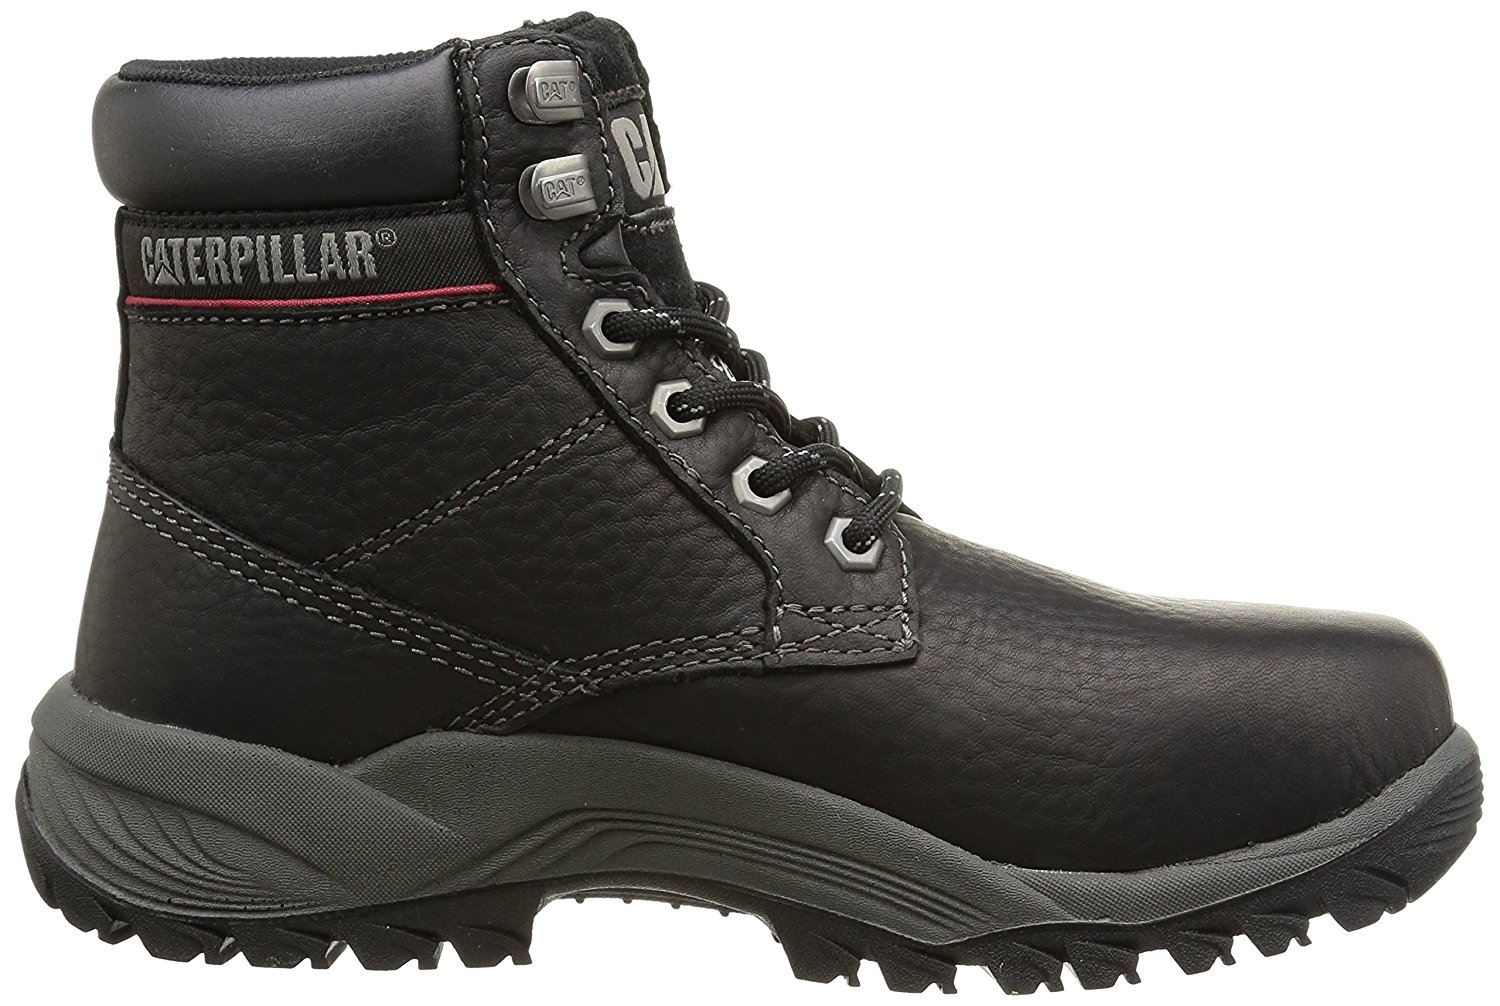 f0158f764e90 Womens Caterpillar Dryverse S3 Waterproof Steel Toe Safety Leather Work  Boots